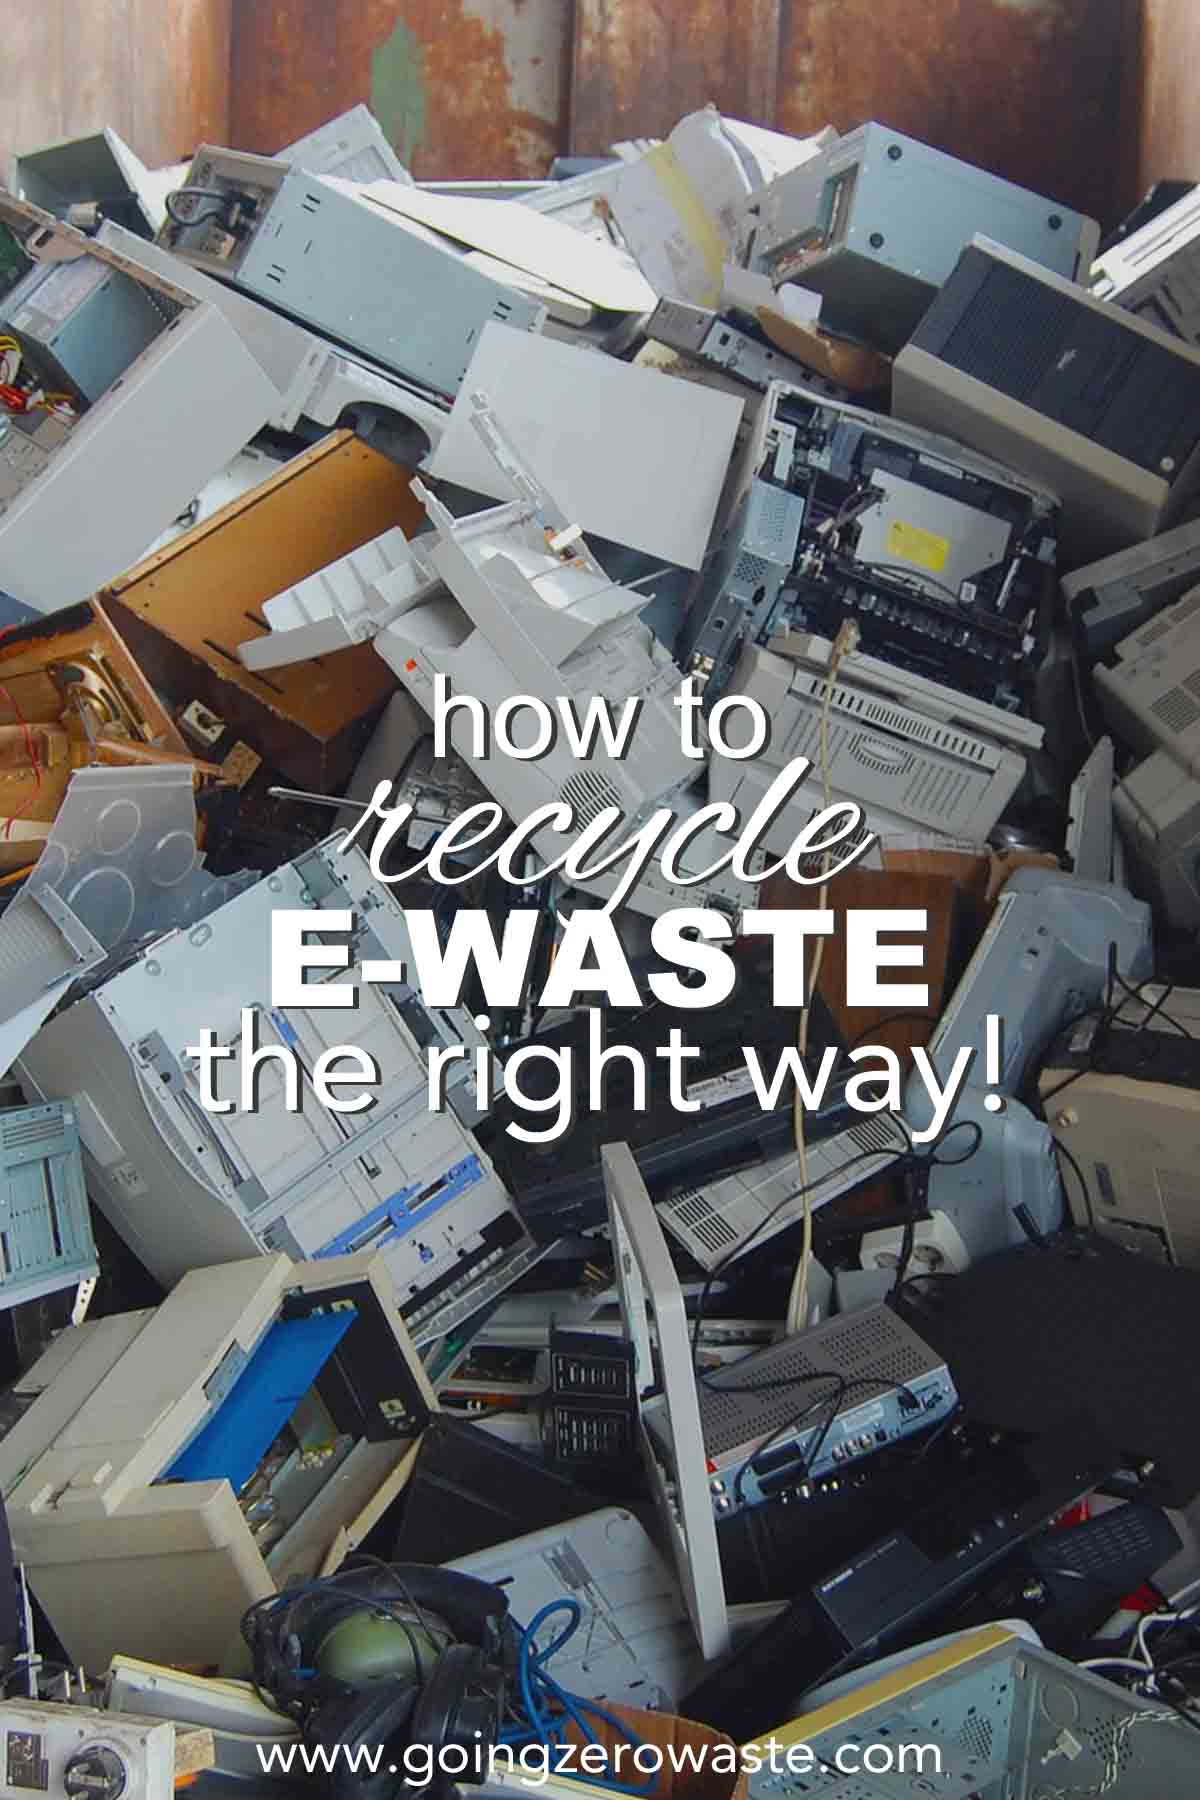 How to Recycle E-Waste the Right Way!